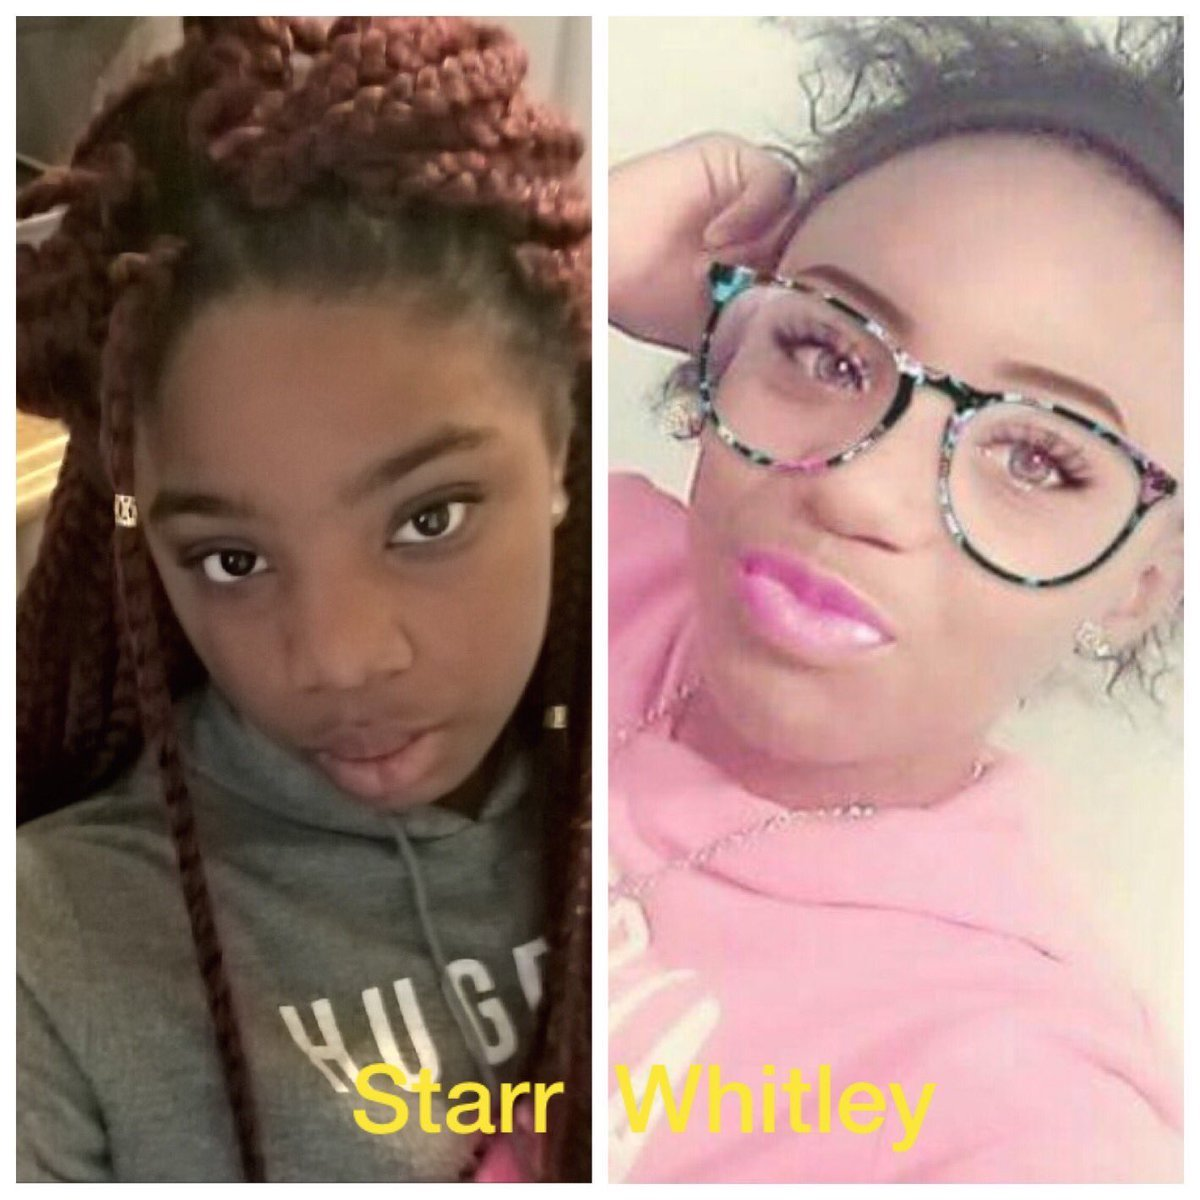 Police in Kansas City are looking for two missing juveniles.